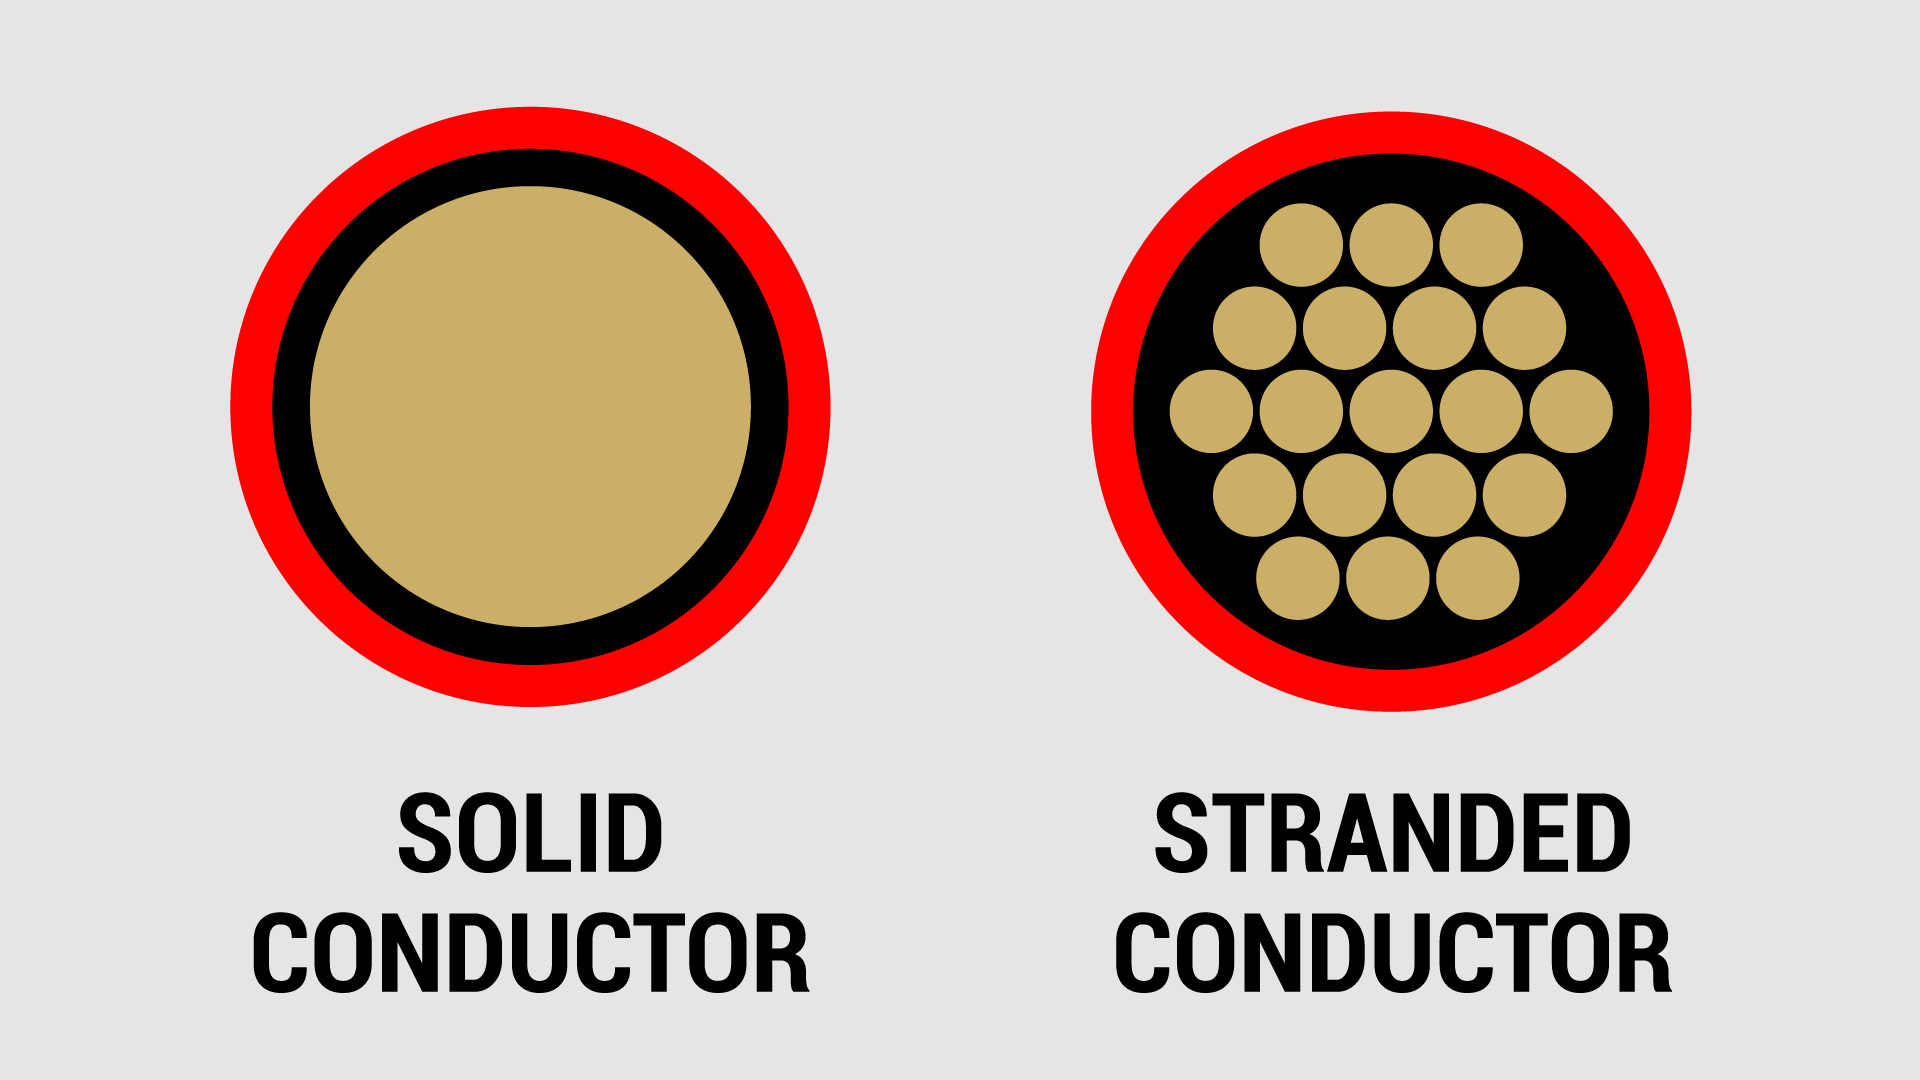 Internal Look At The Conductor Of A Wire